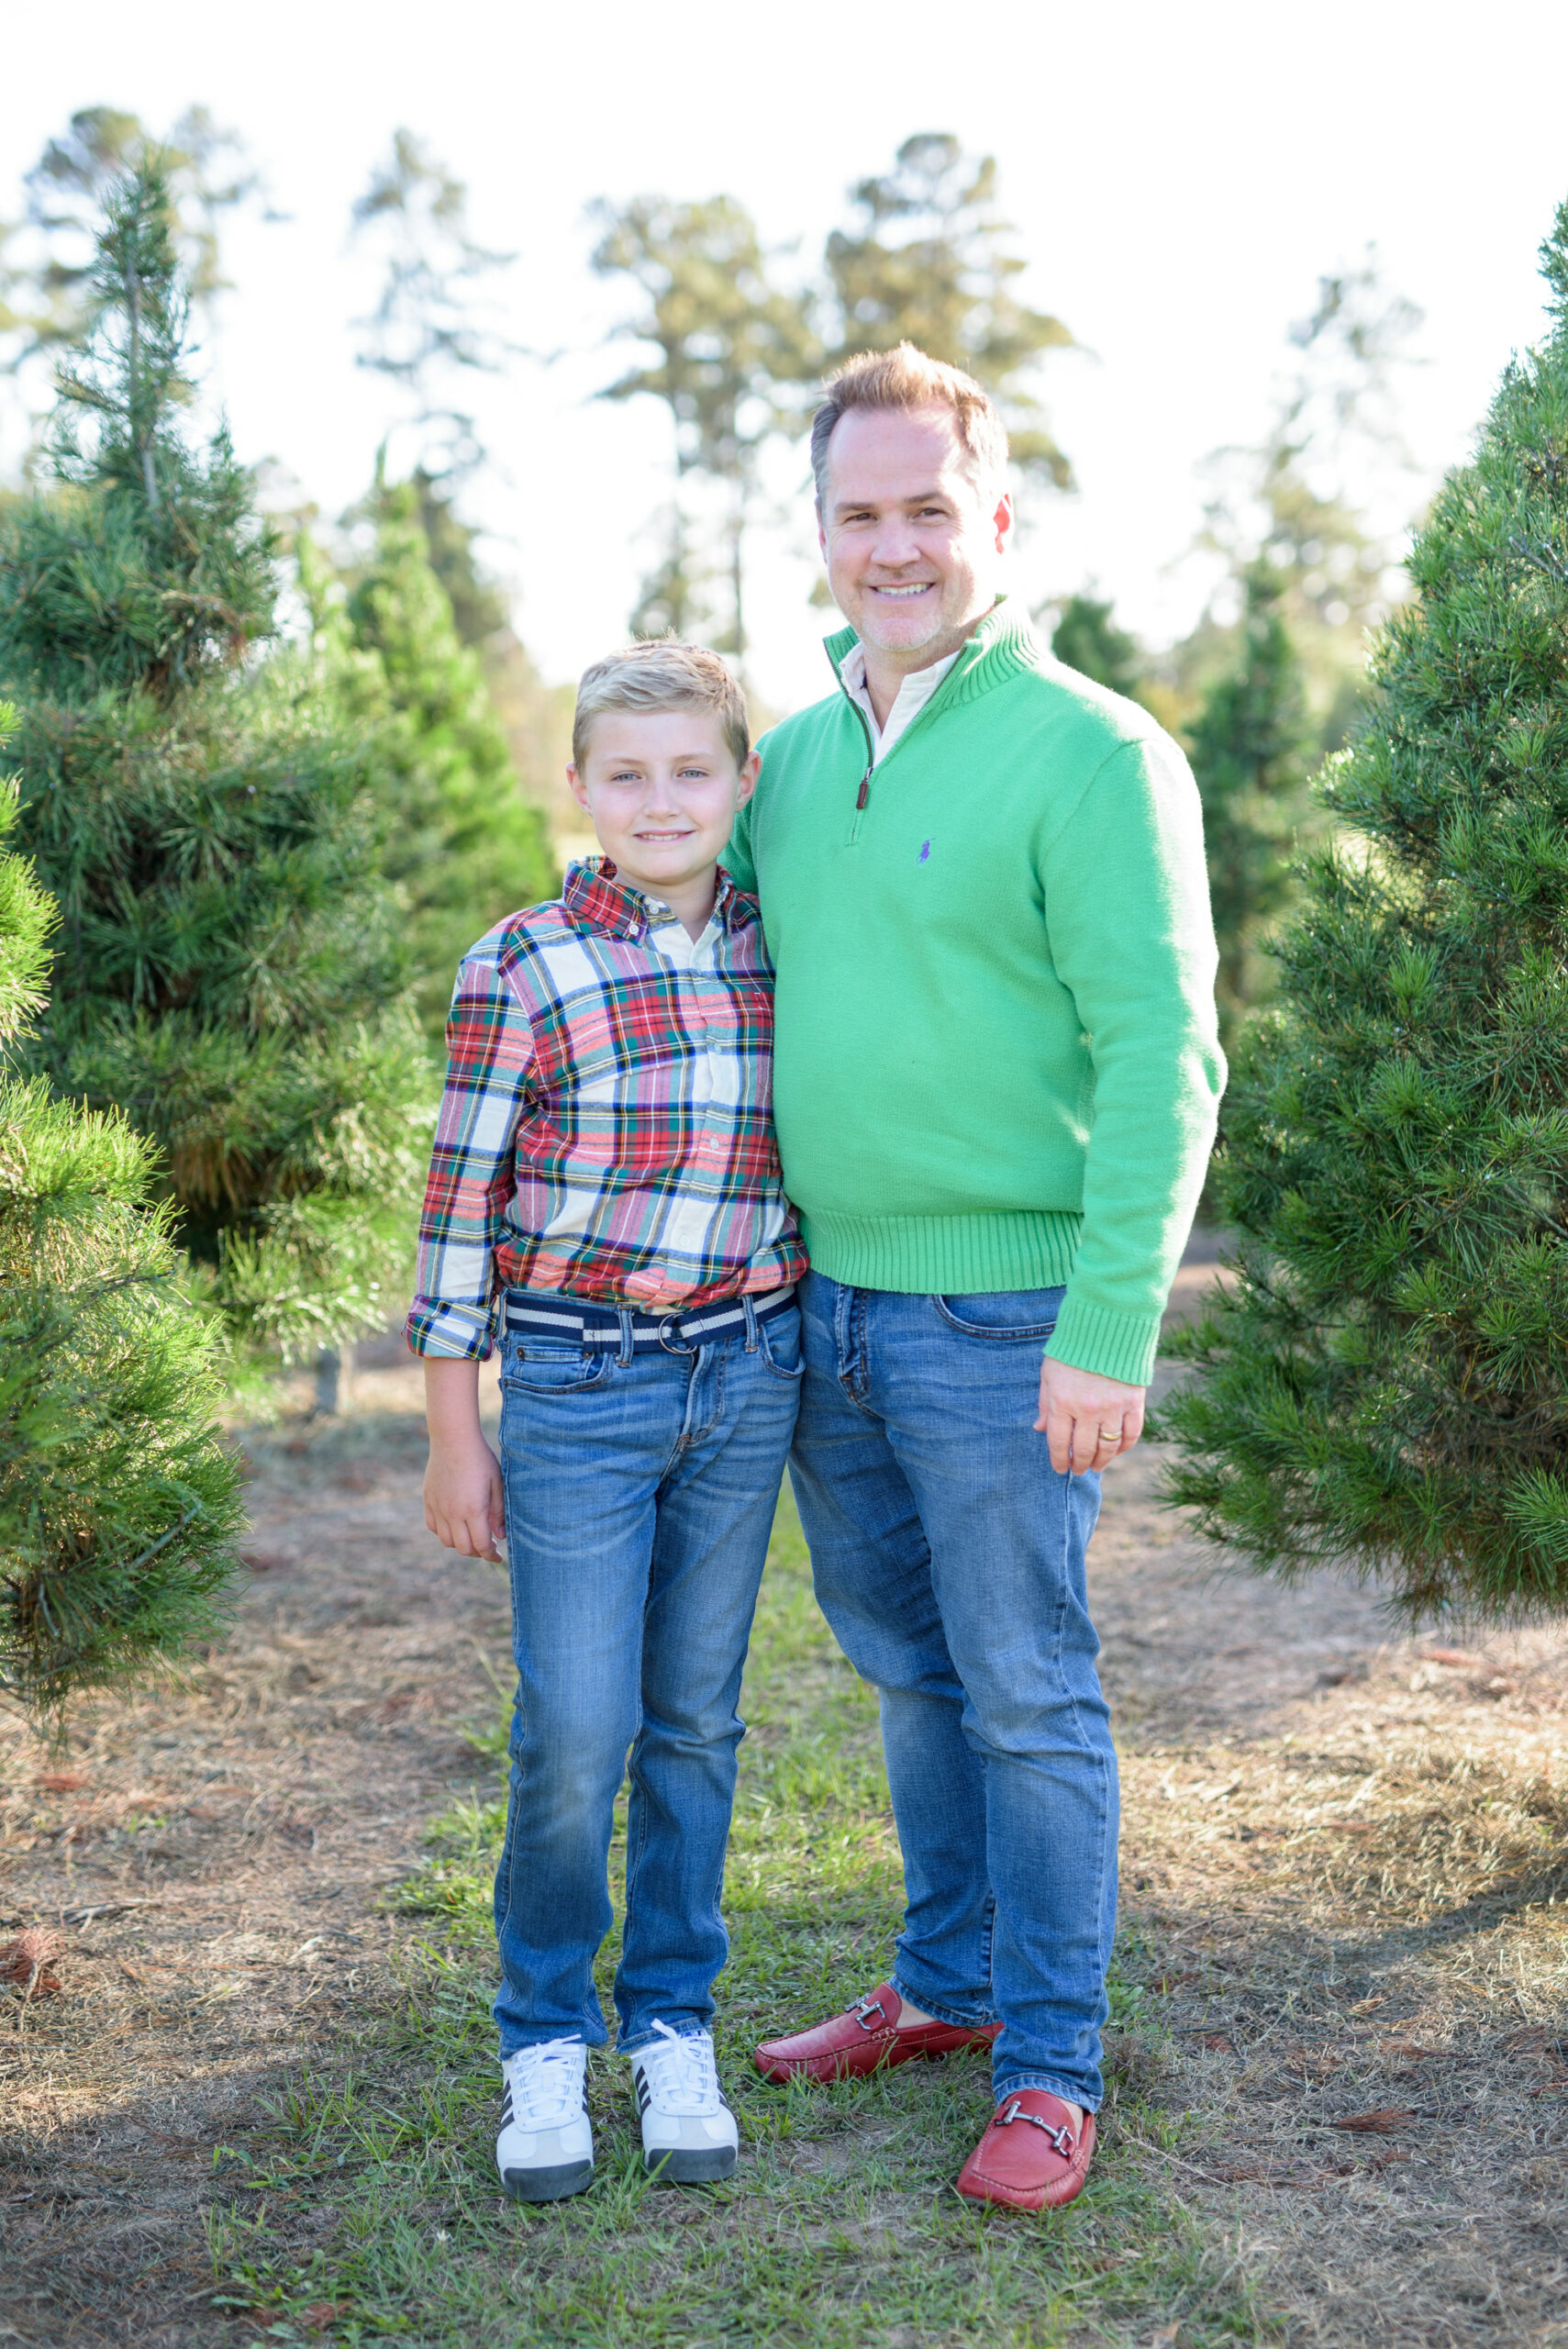 Christmas Tree Farm Photos by popular Houston lifestyle blog, Fancy Ashley: image of a dad and his daughter standing together in a row of pine trees and wearing a green pullover sweater, red loafers, plaid button up shirt, and jeans.